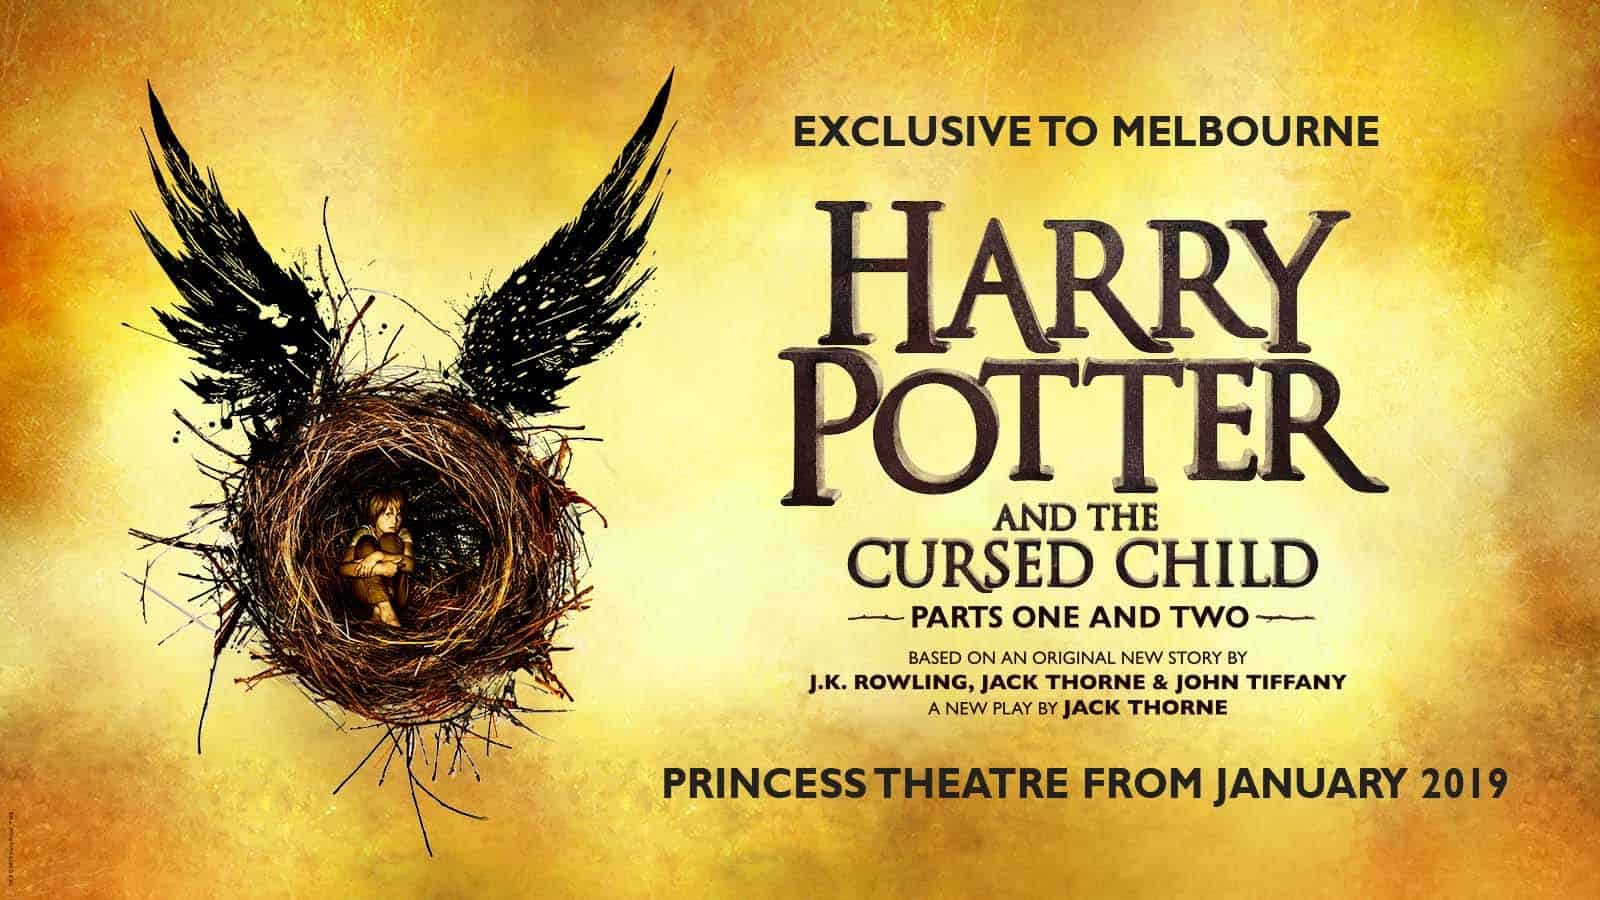 Don't get cursed at the Harry Potter and the Cursed Child